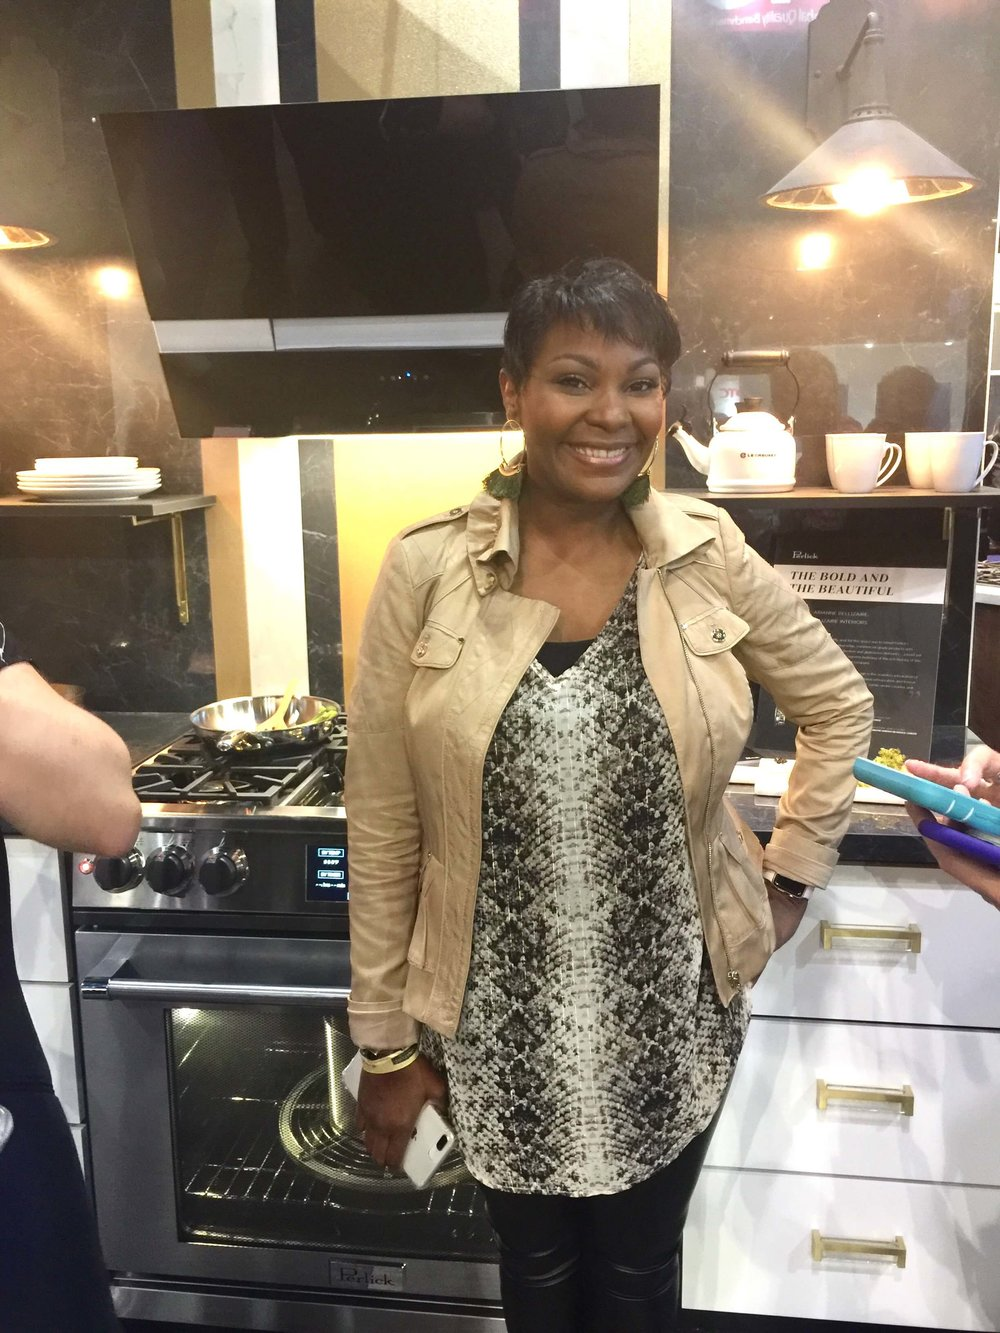 Arianne Bellizaire designed a gorgeous kitchen for the Perlick booth at KBIS2018 #perlick #kitchendesign